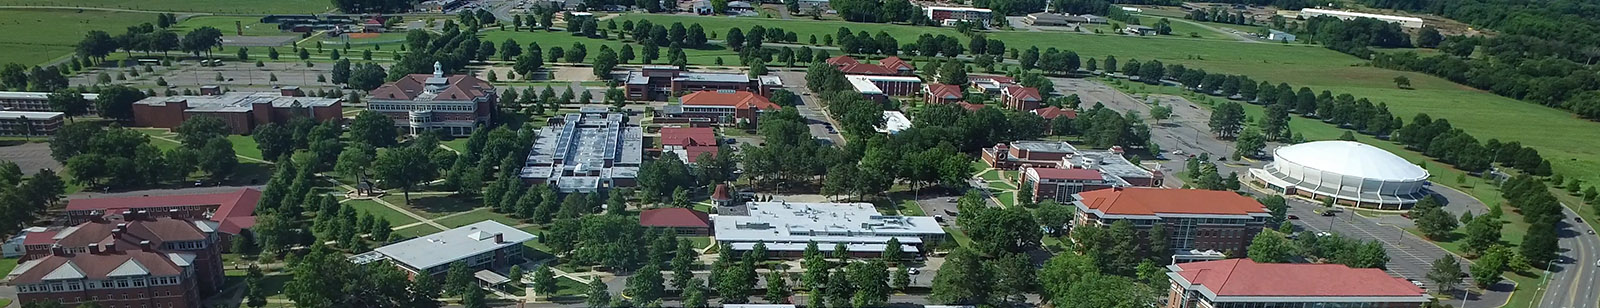 an aerial photo of arkansas tech university